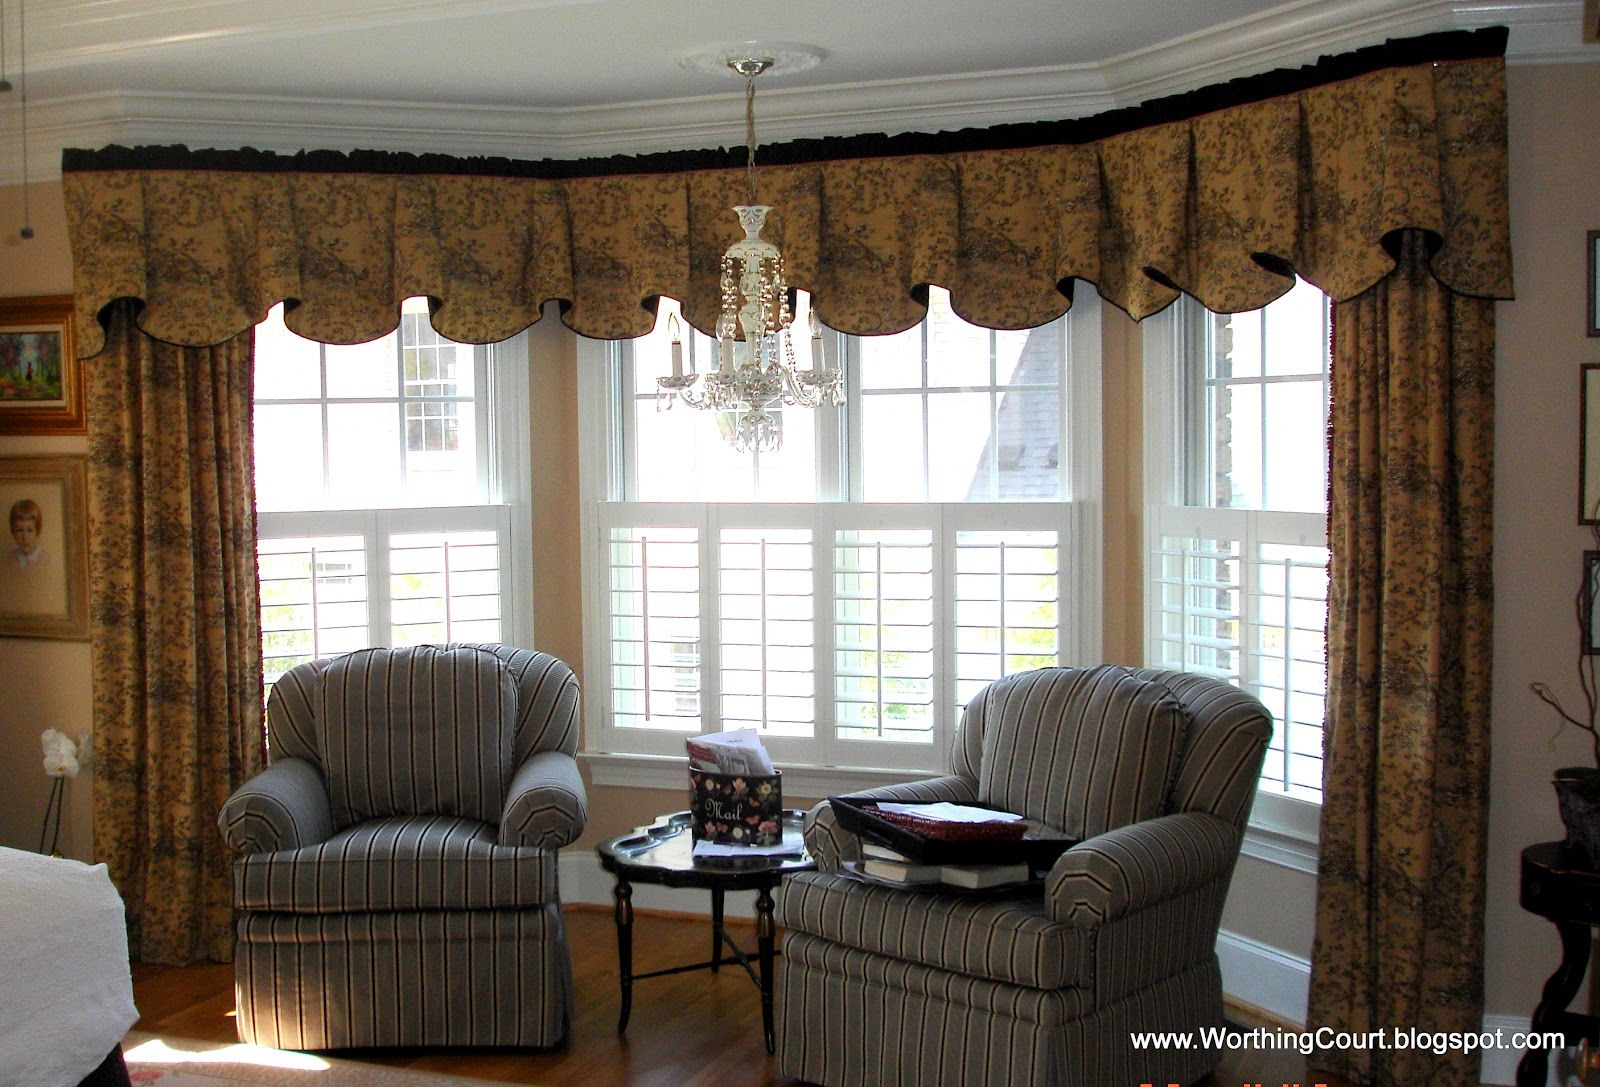 Bay window treatment ideas worthing court bay window Window treatments for bay window in living room